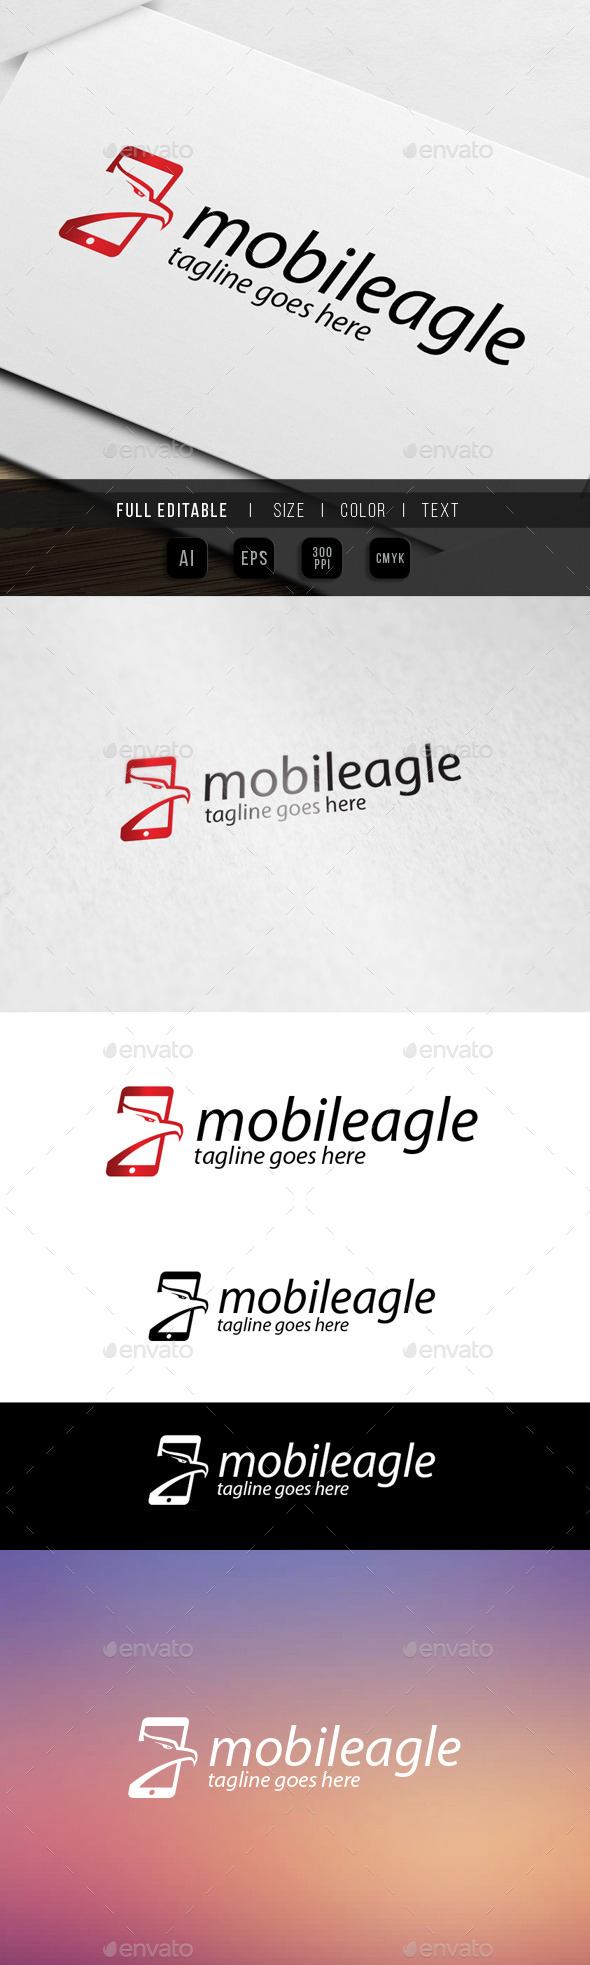 GraphicRiver mobile eagle logo 9870241